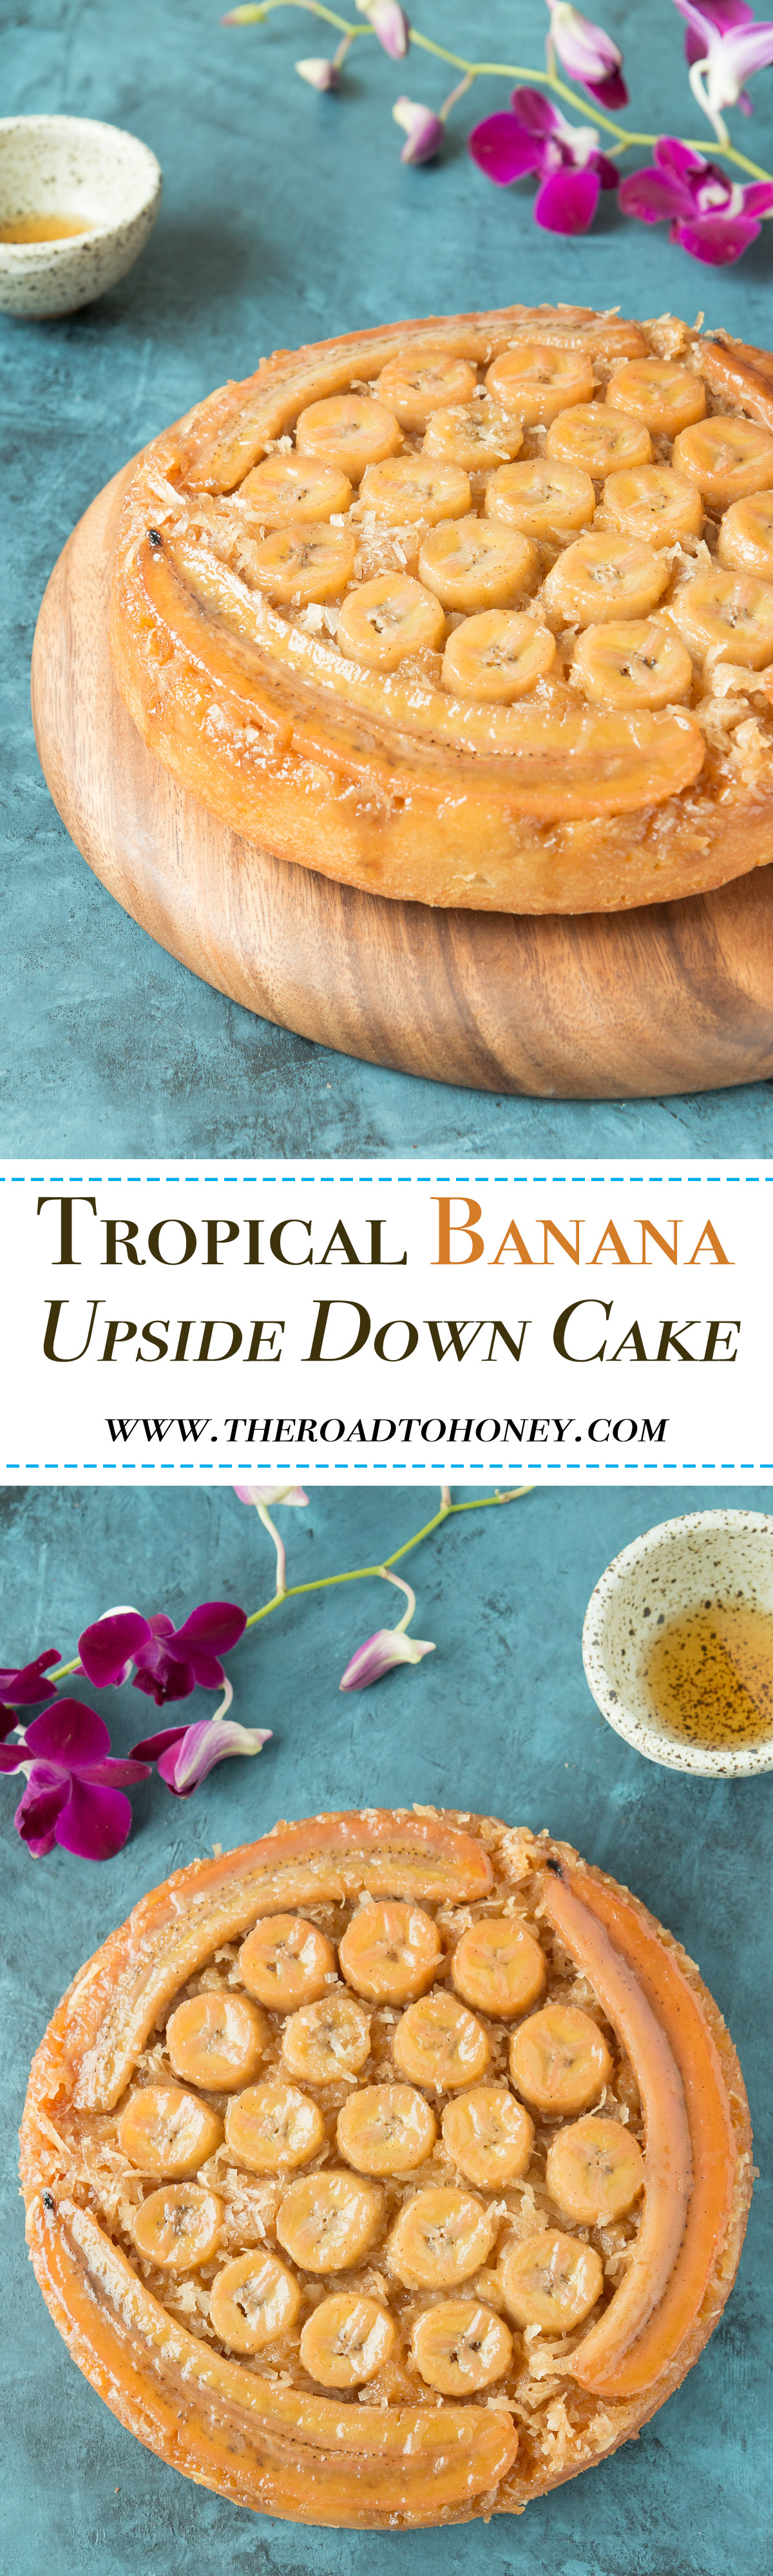 Tropical Banana Upside Down Cake - filled with sweet mandarin oranges & pineapple, then topped with bananas nestled into a luscious caramel & coconut topping. For the ultimate in adult boozy treats, drizzle a little bit of rum on top of the cake. You'll have that tropical state of mind in no time. Click for RECIPE.